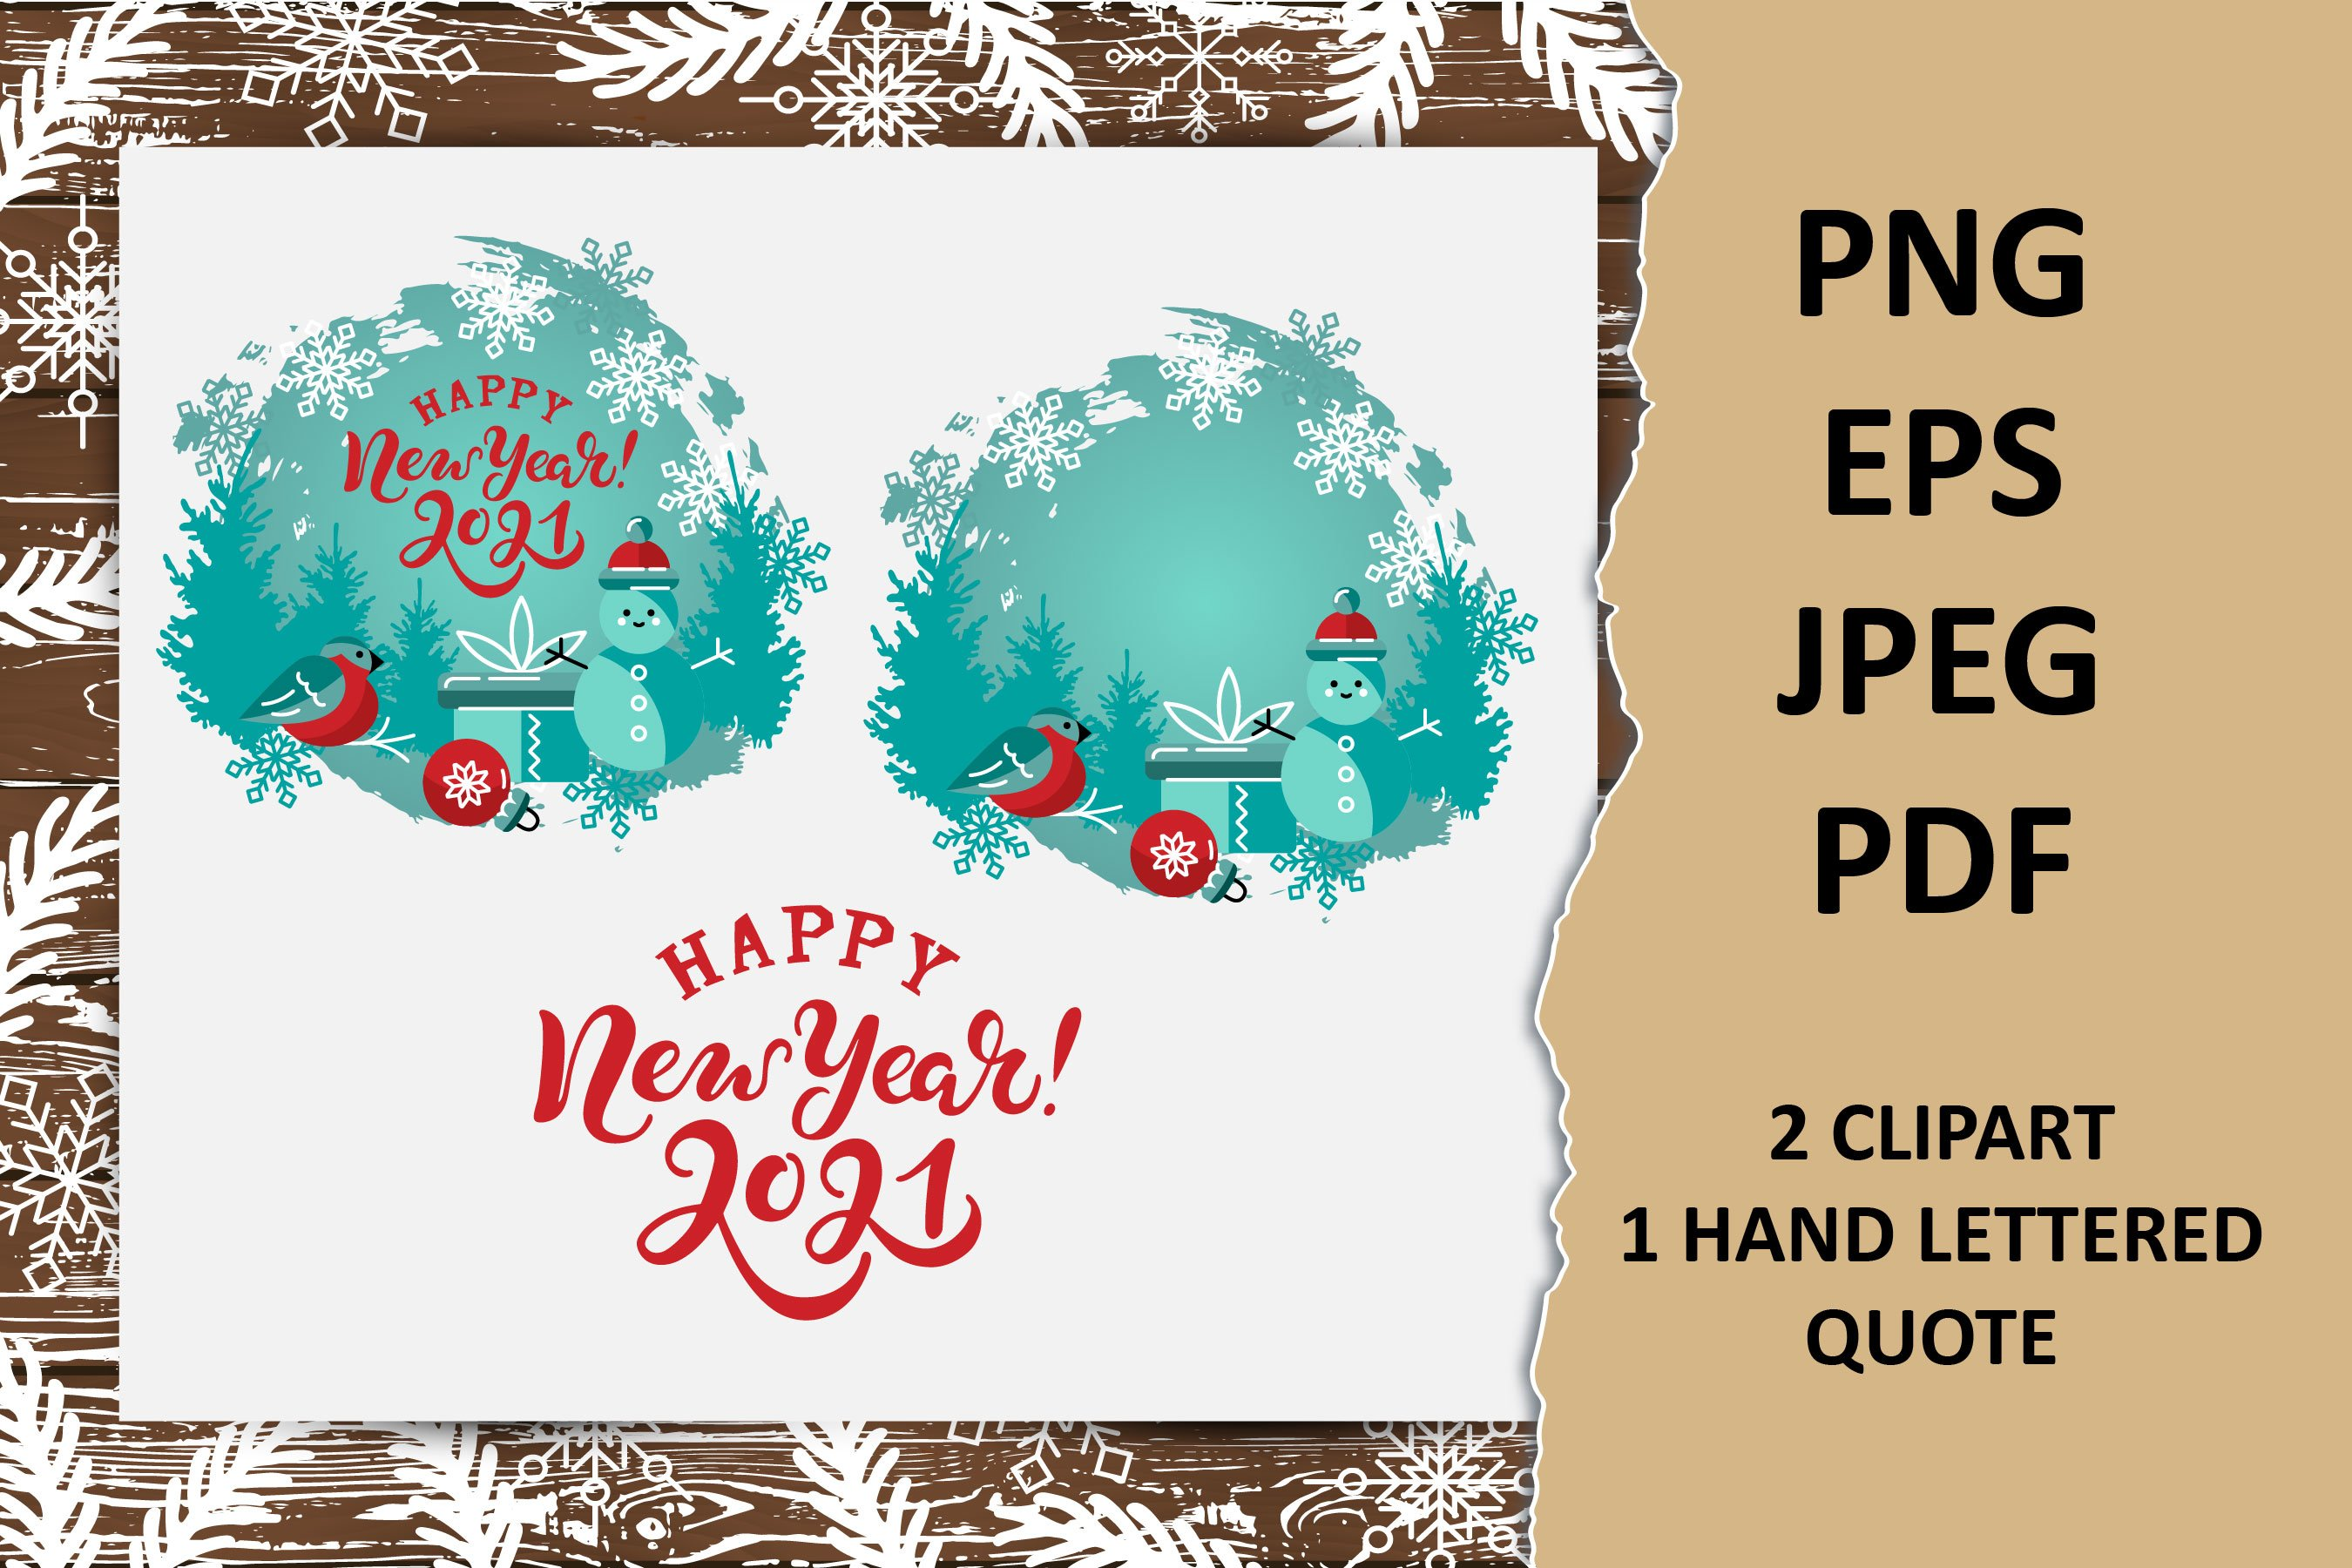 happy new year 2021 clipart with snowman hand lettered sign 947389 elements design bundles happy new year 2021 clipart with snowman hand lettered sign